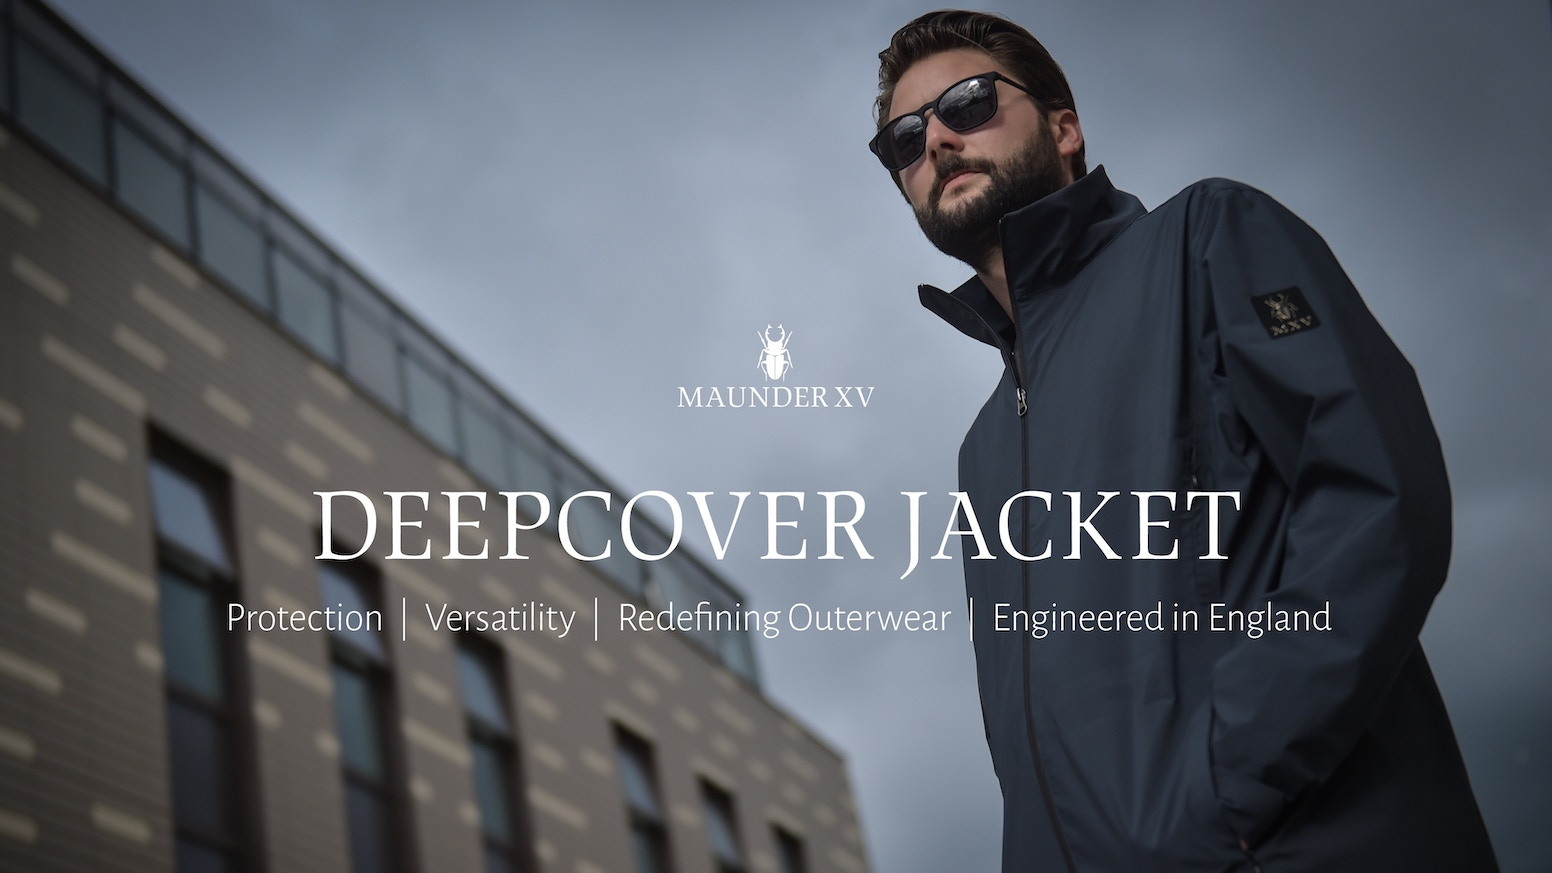 Versatile 3 in 1 technical jacket rich in features. Considerately engineered in England for every scenario.